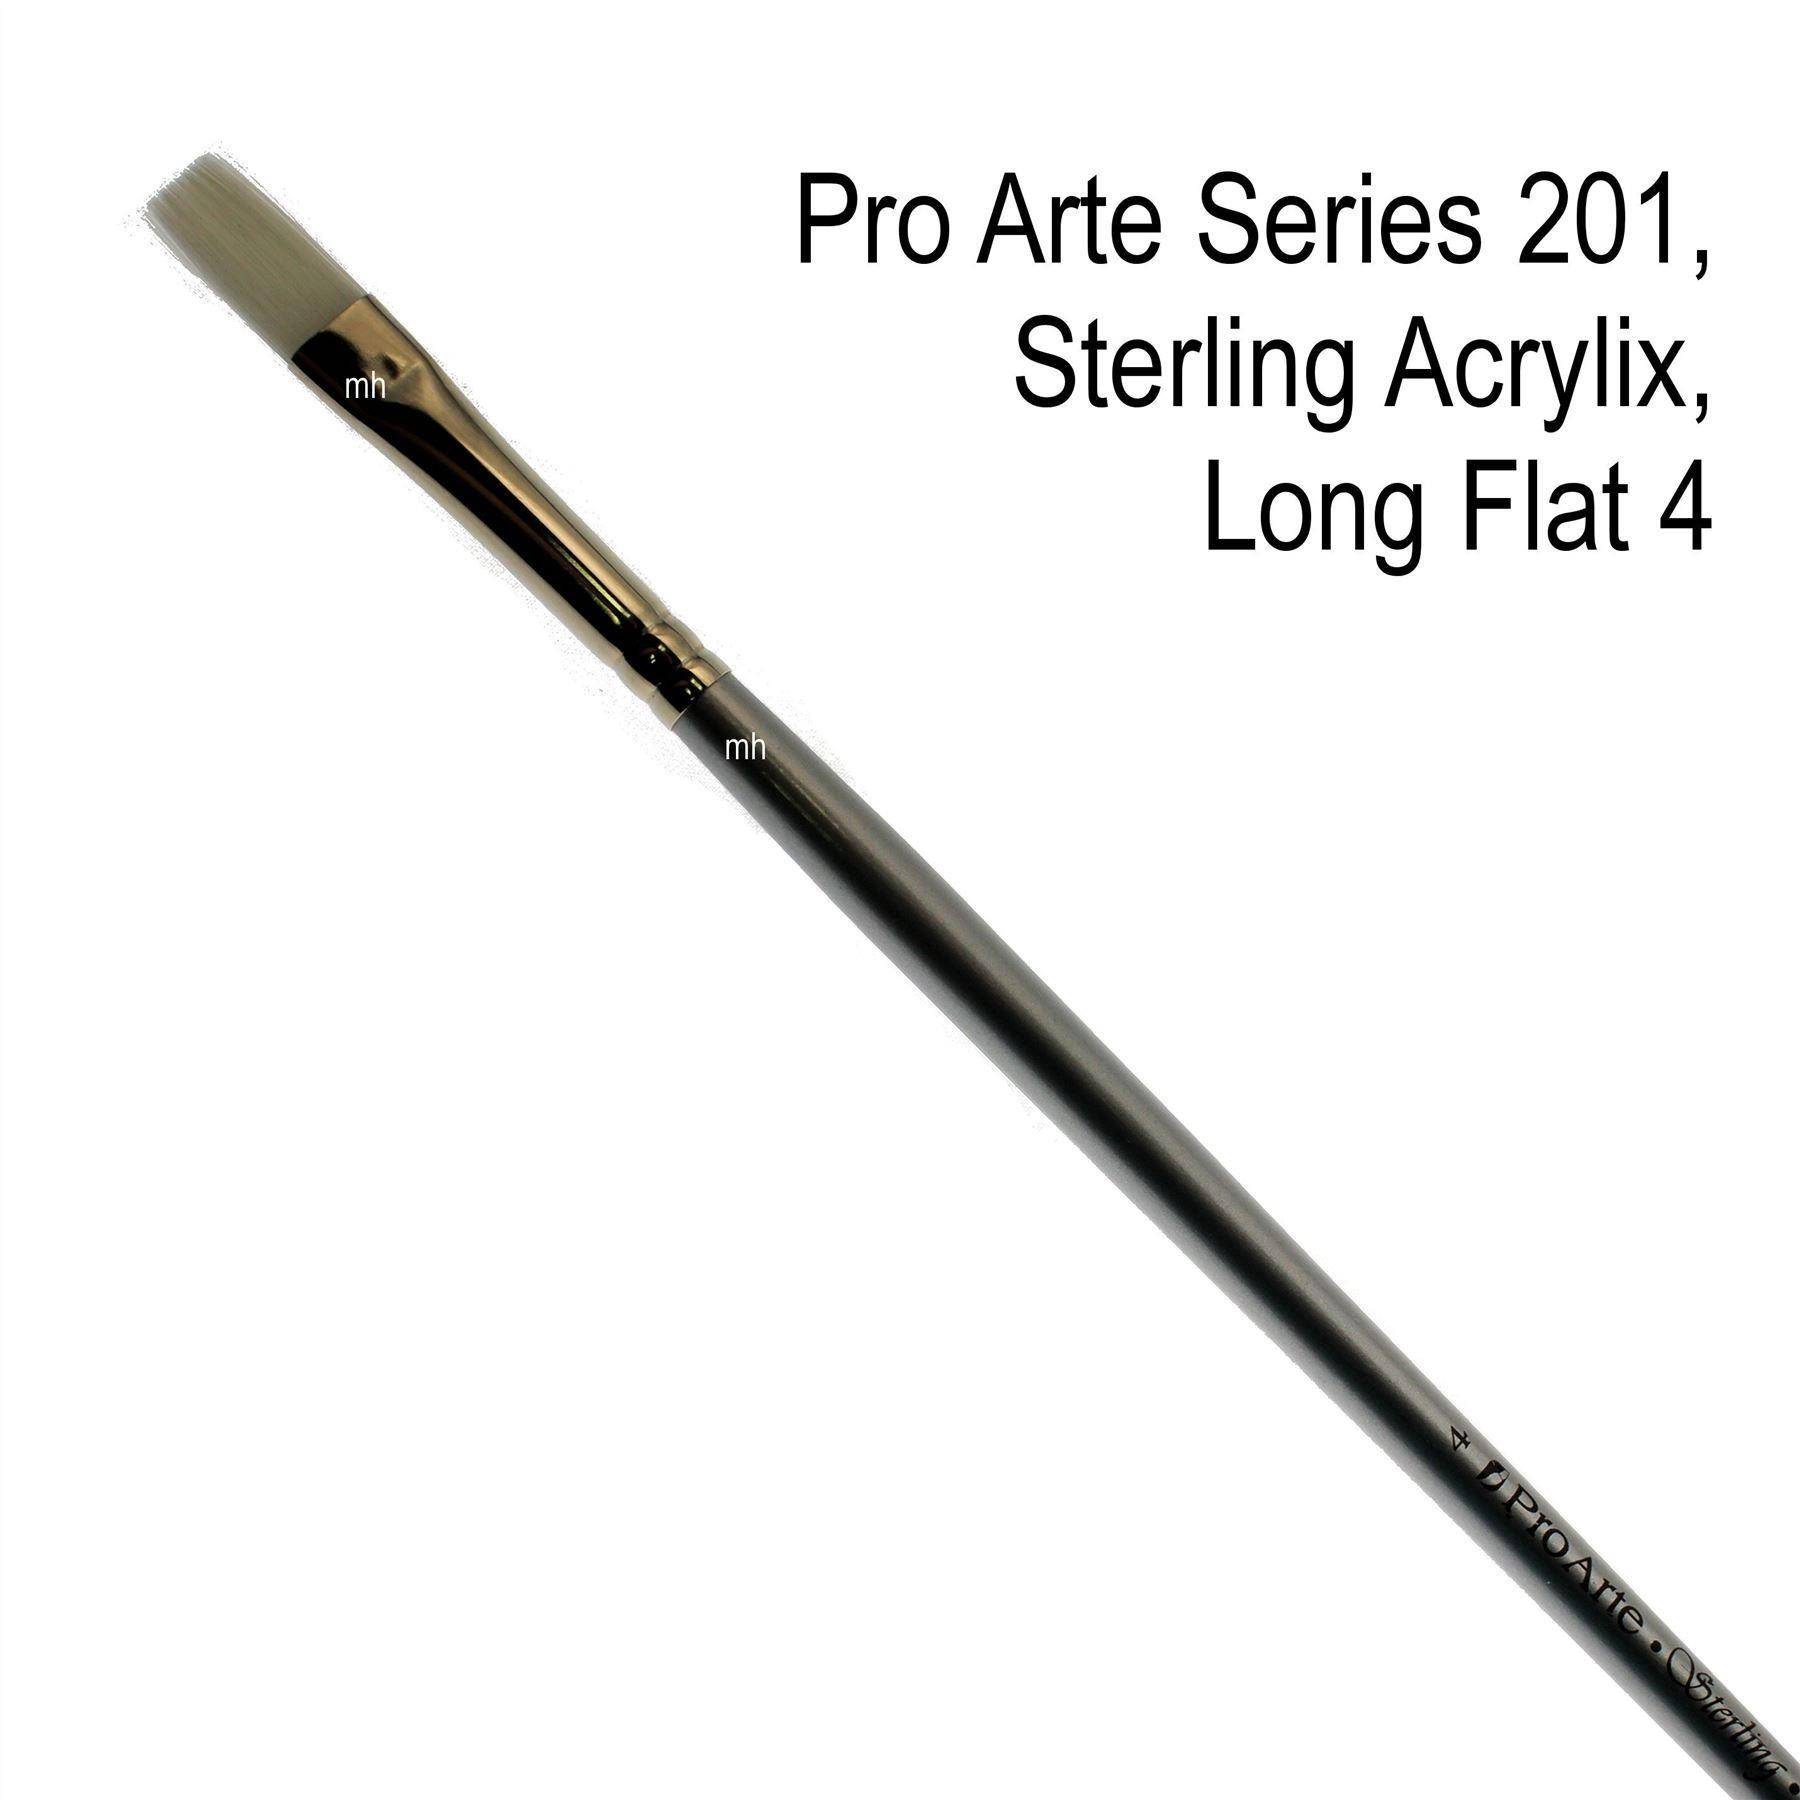 Pro Arte Series 201, Sterling Acrylix Brushes, Long Flat Brush - Assorted Sizes